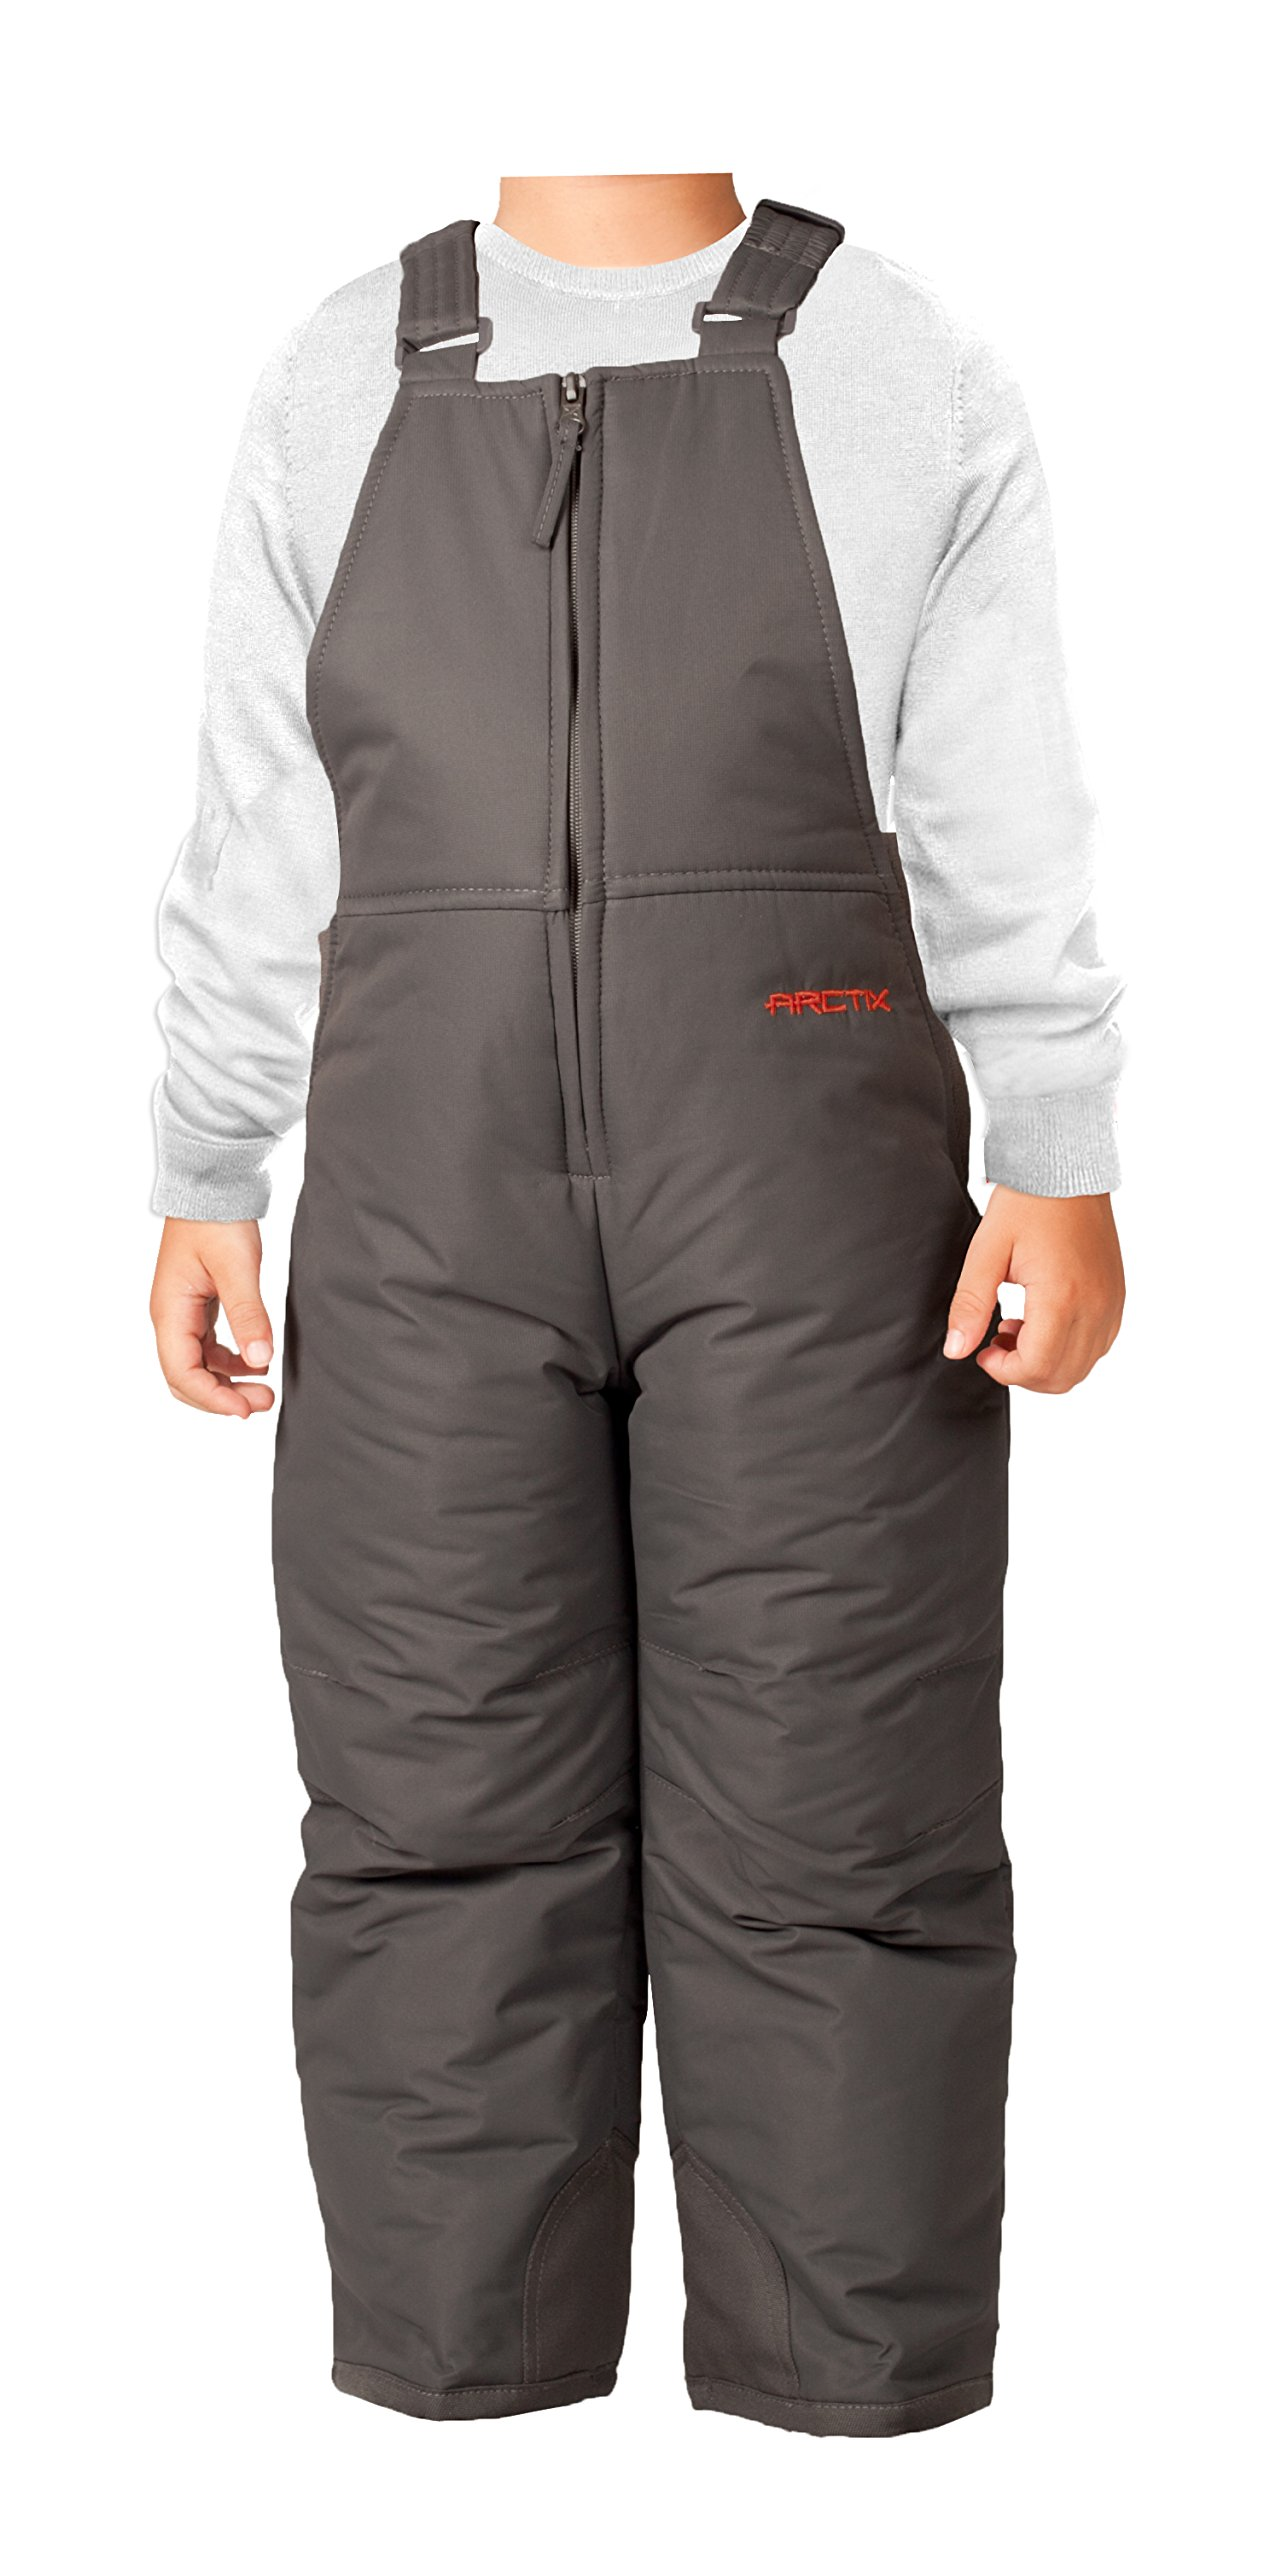 Arctix Infant-Toddler Chest High Snow Bib Overalls, Charcoal, 24 Months by Arctix